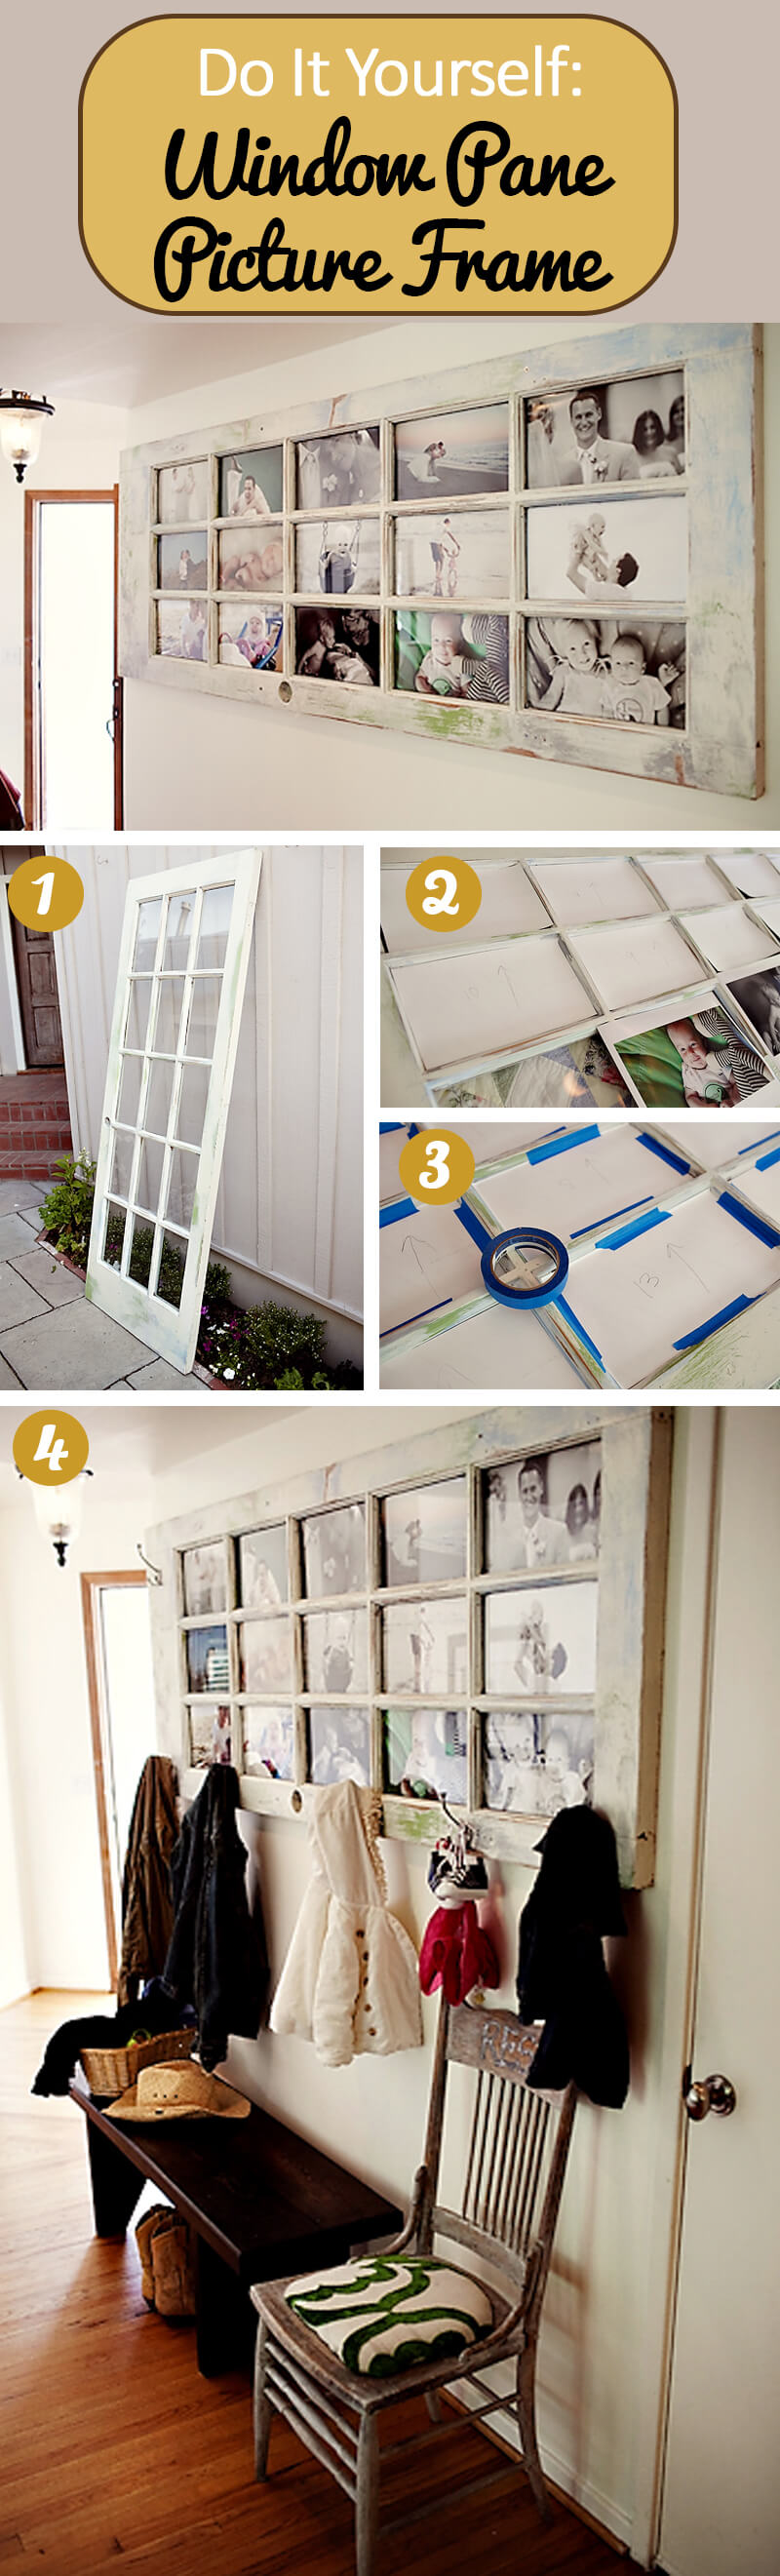 Old Doors Make the Best Picture Frames